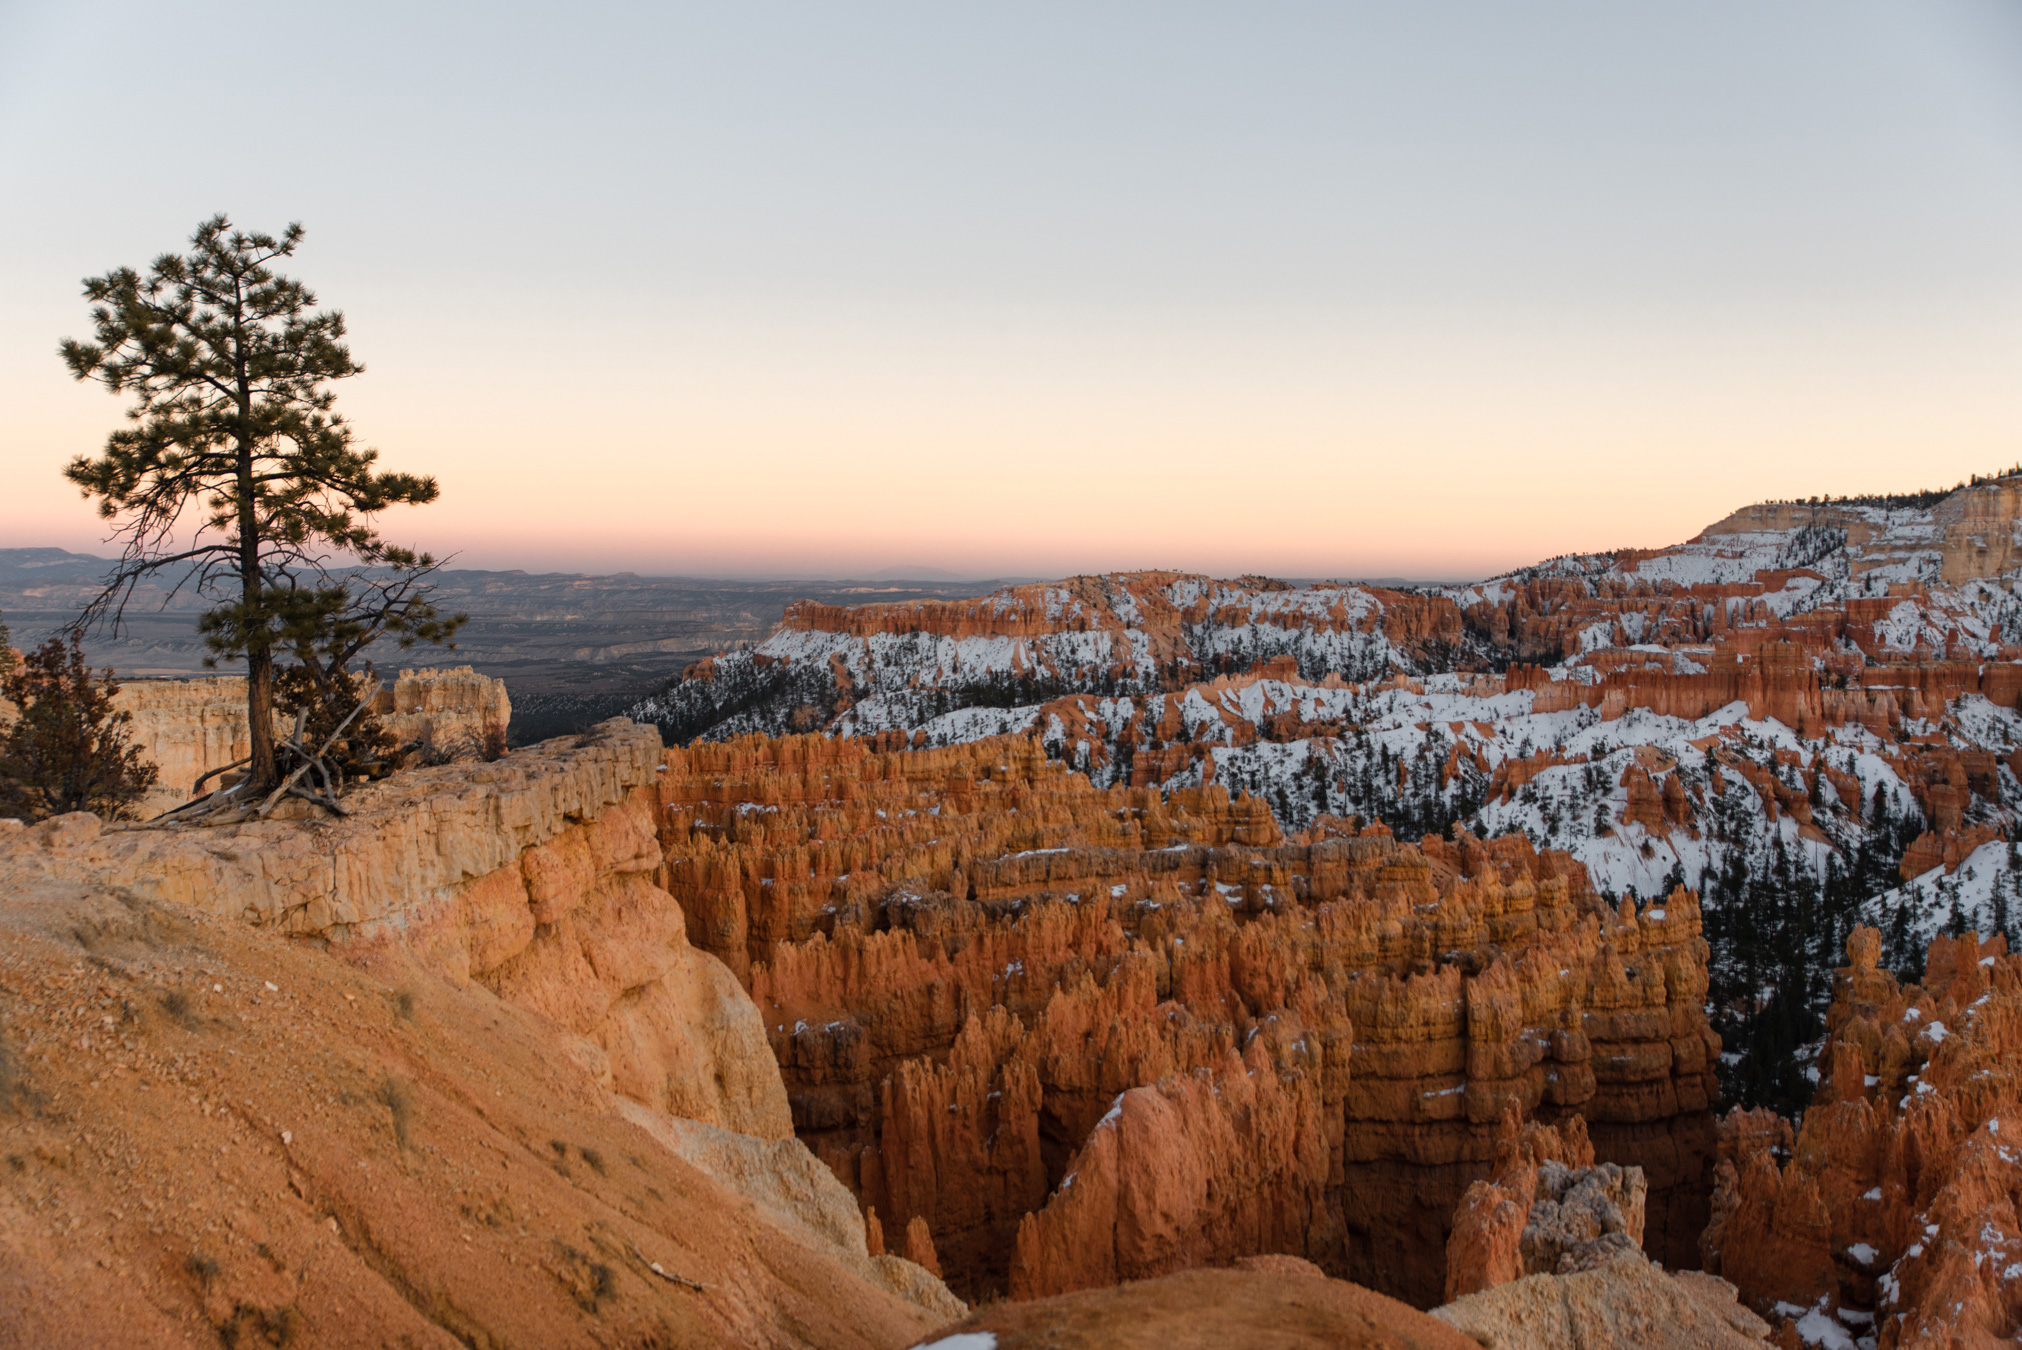 Blog-Mode-and-the-city-Lifestyle-bryce-canyon-8